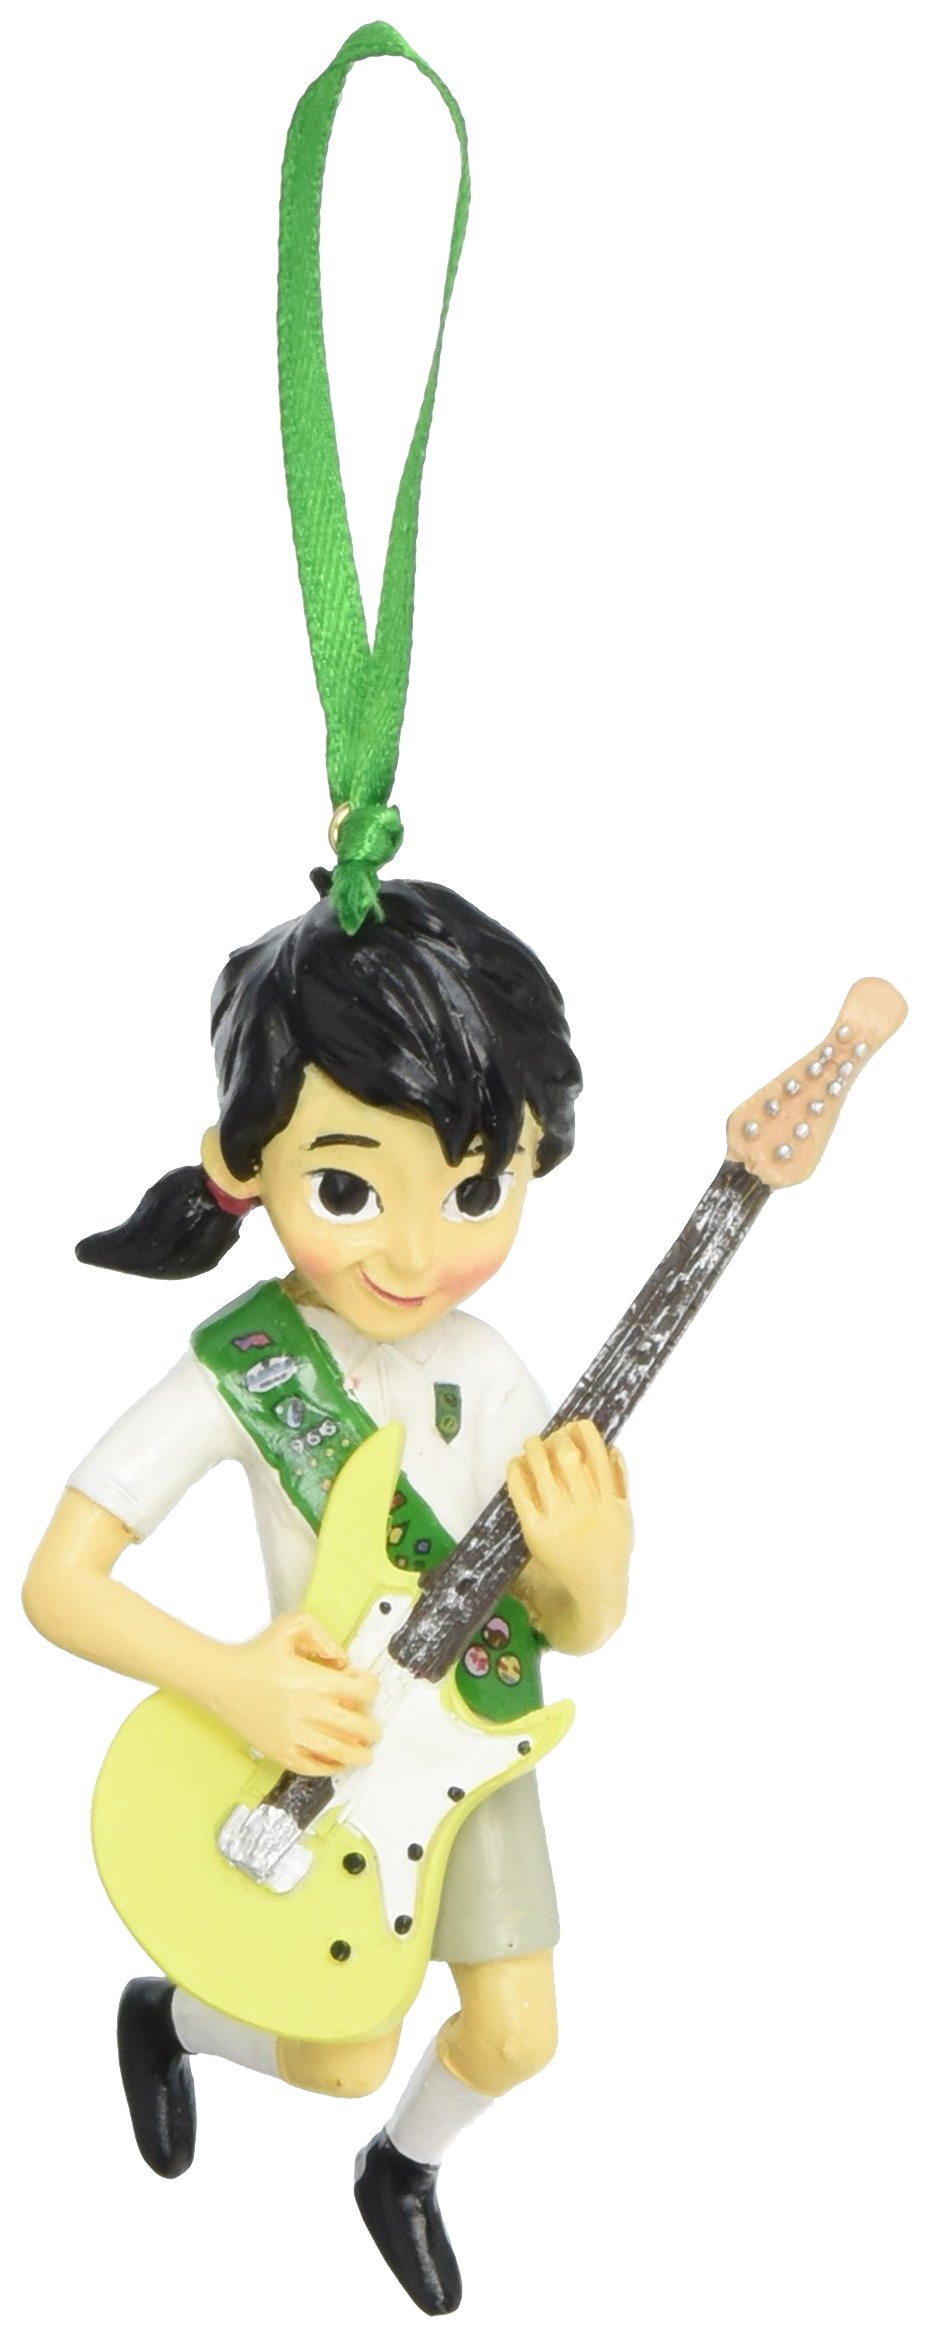 Department 56 Girl Scouts Junior Musician Hanging Ornament